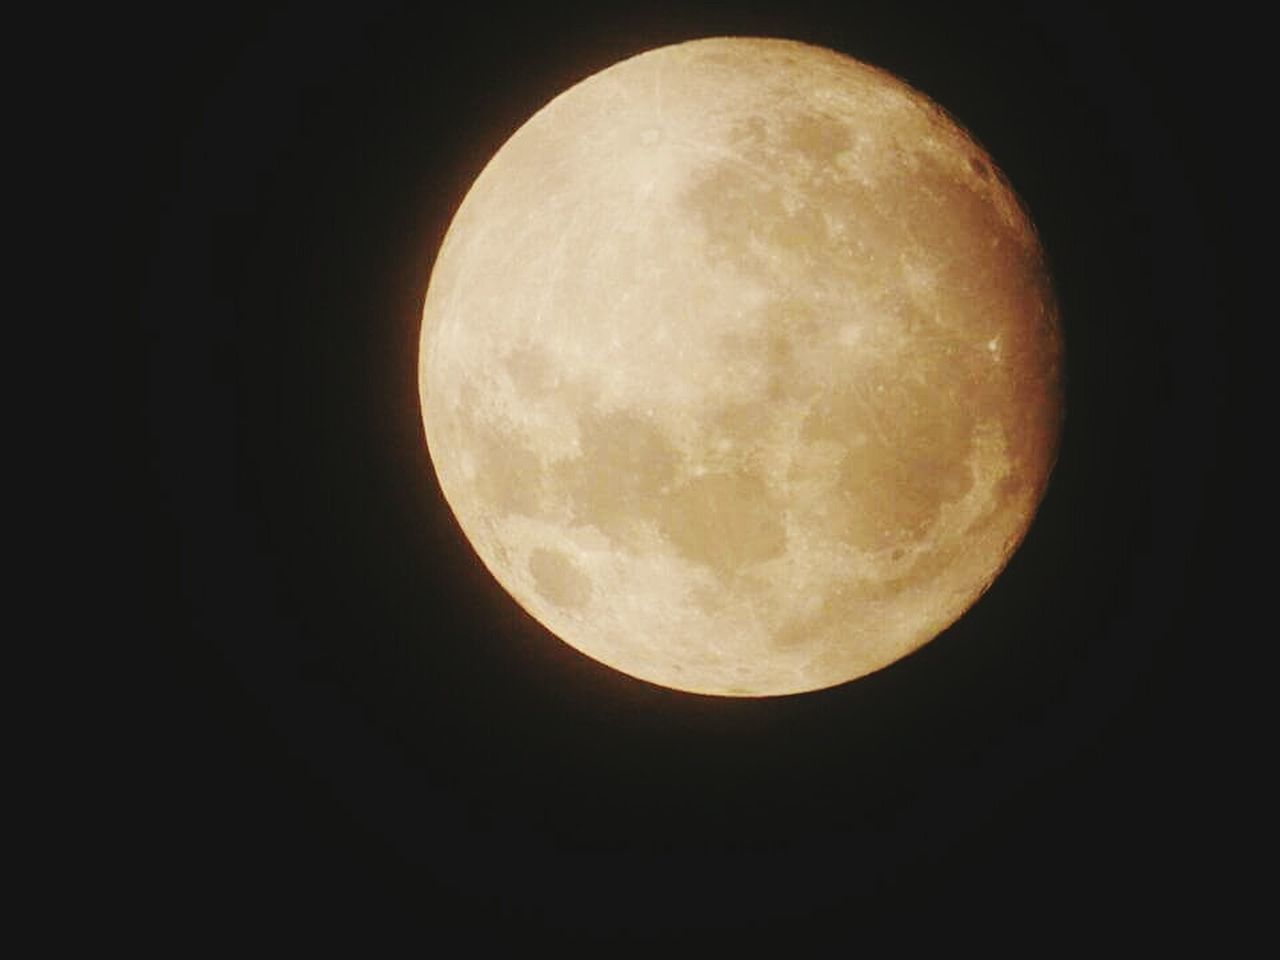 Moonphotography Full Moon Moon Night Nature No People Black Background Moon Surface Space Astronomy Tranquility Sky 月亮很圓很圓很圓